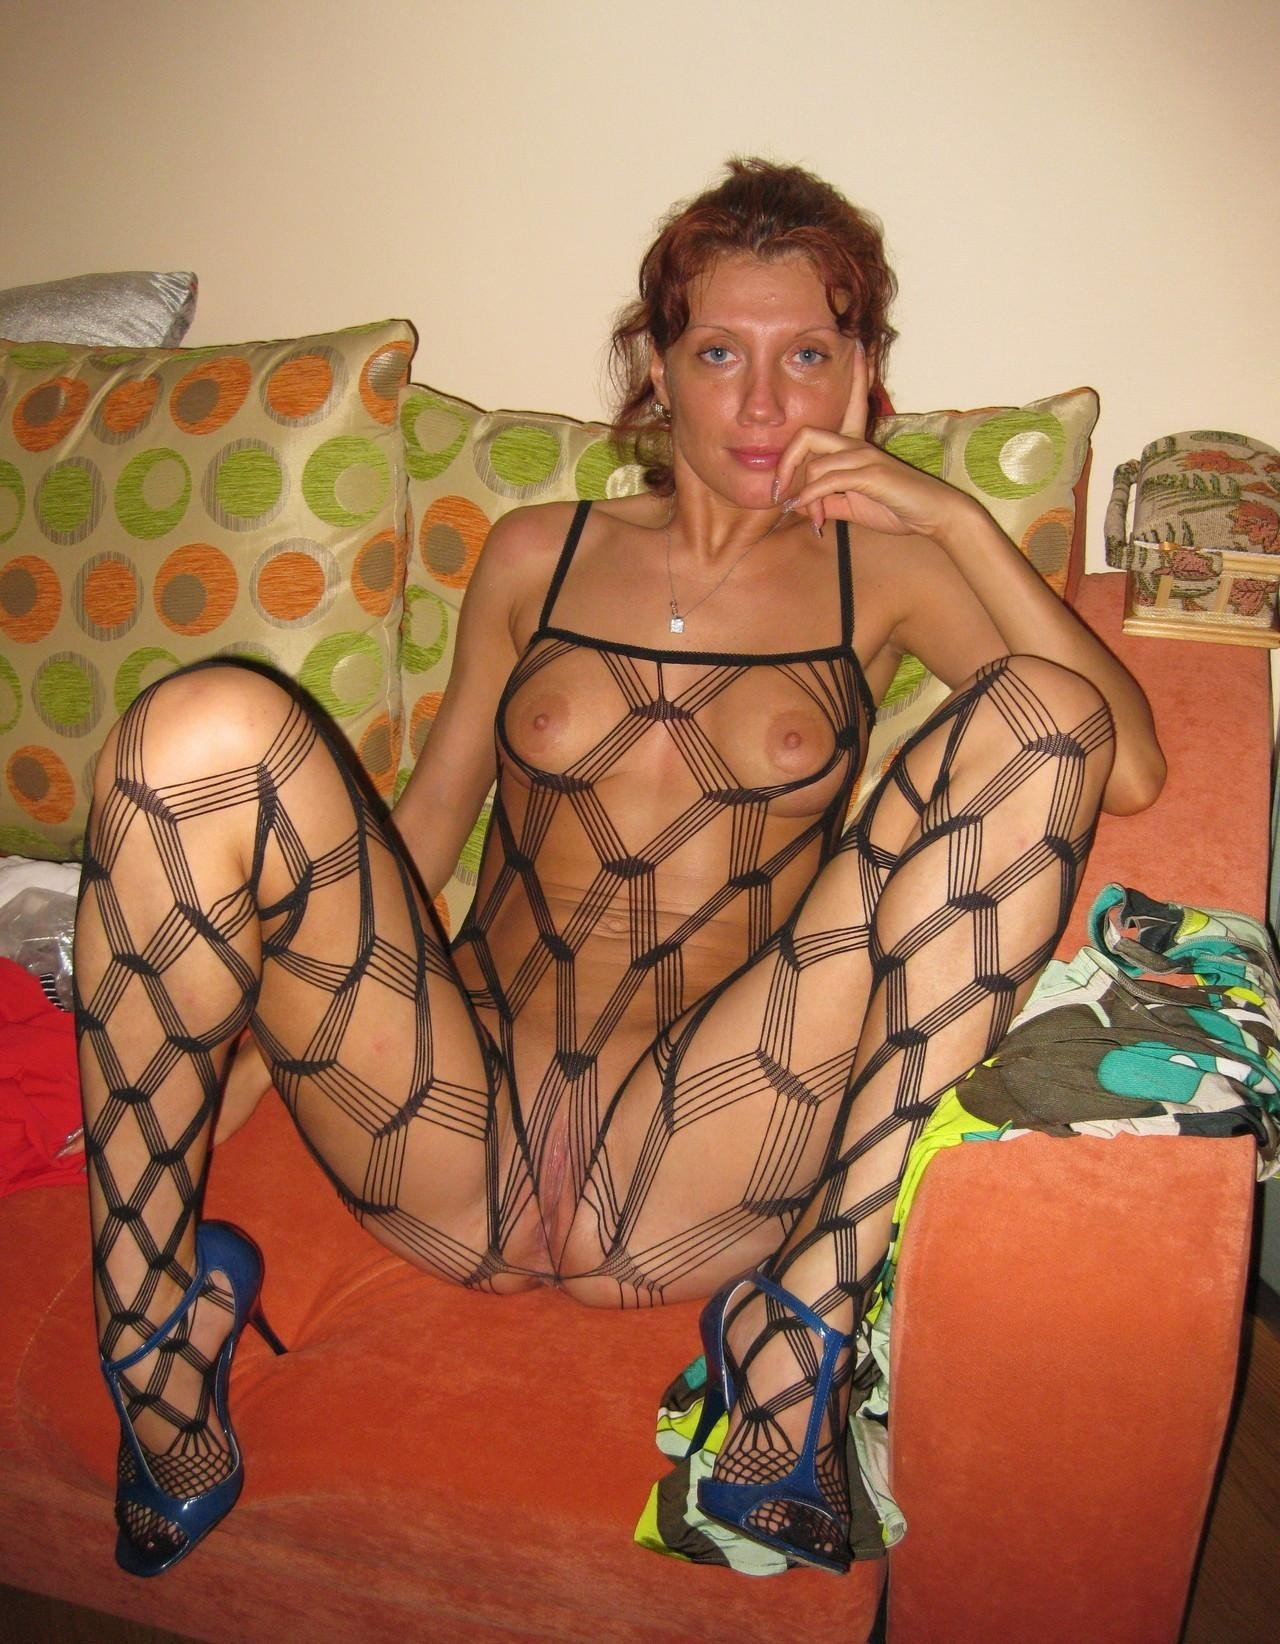 Absolutely one slut in fishnet hot